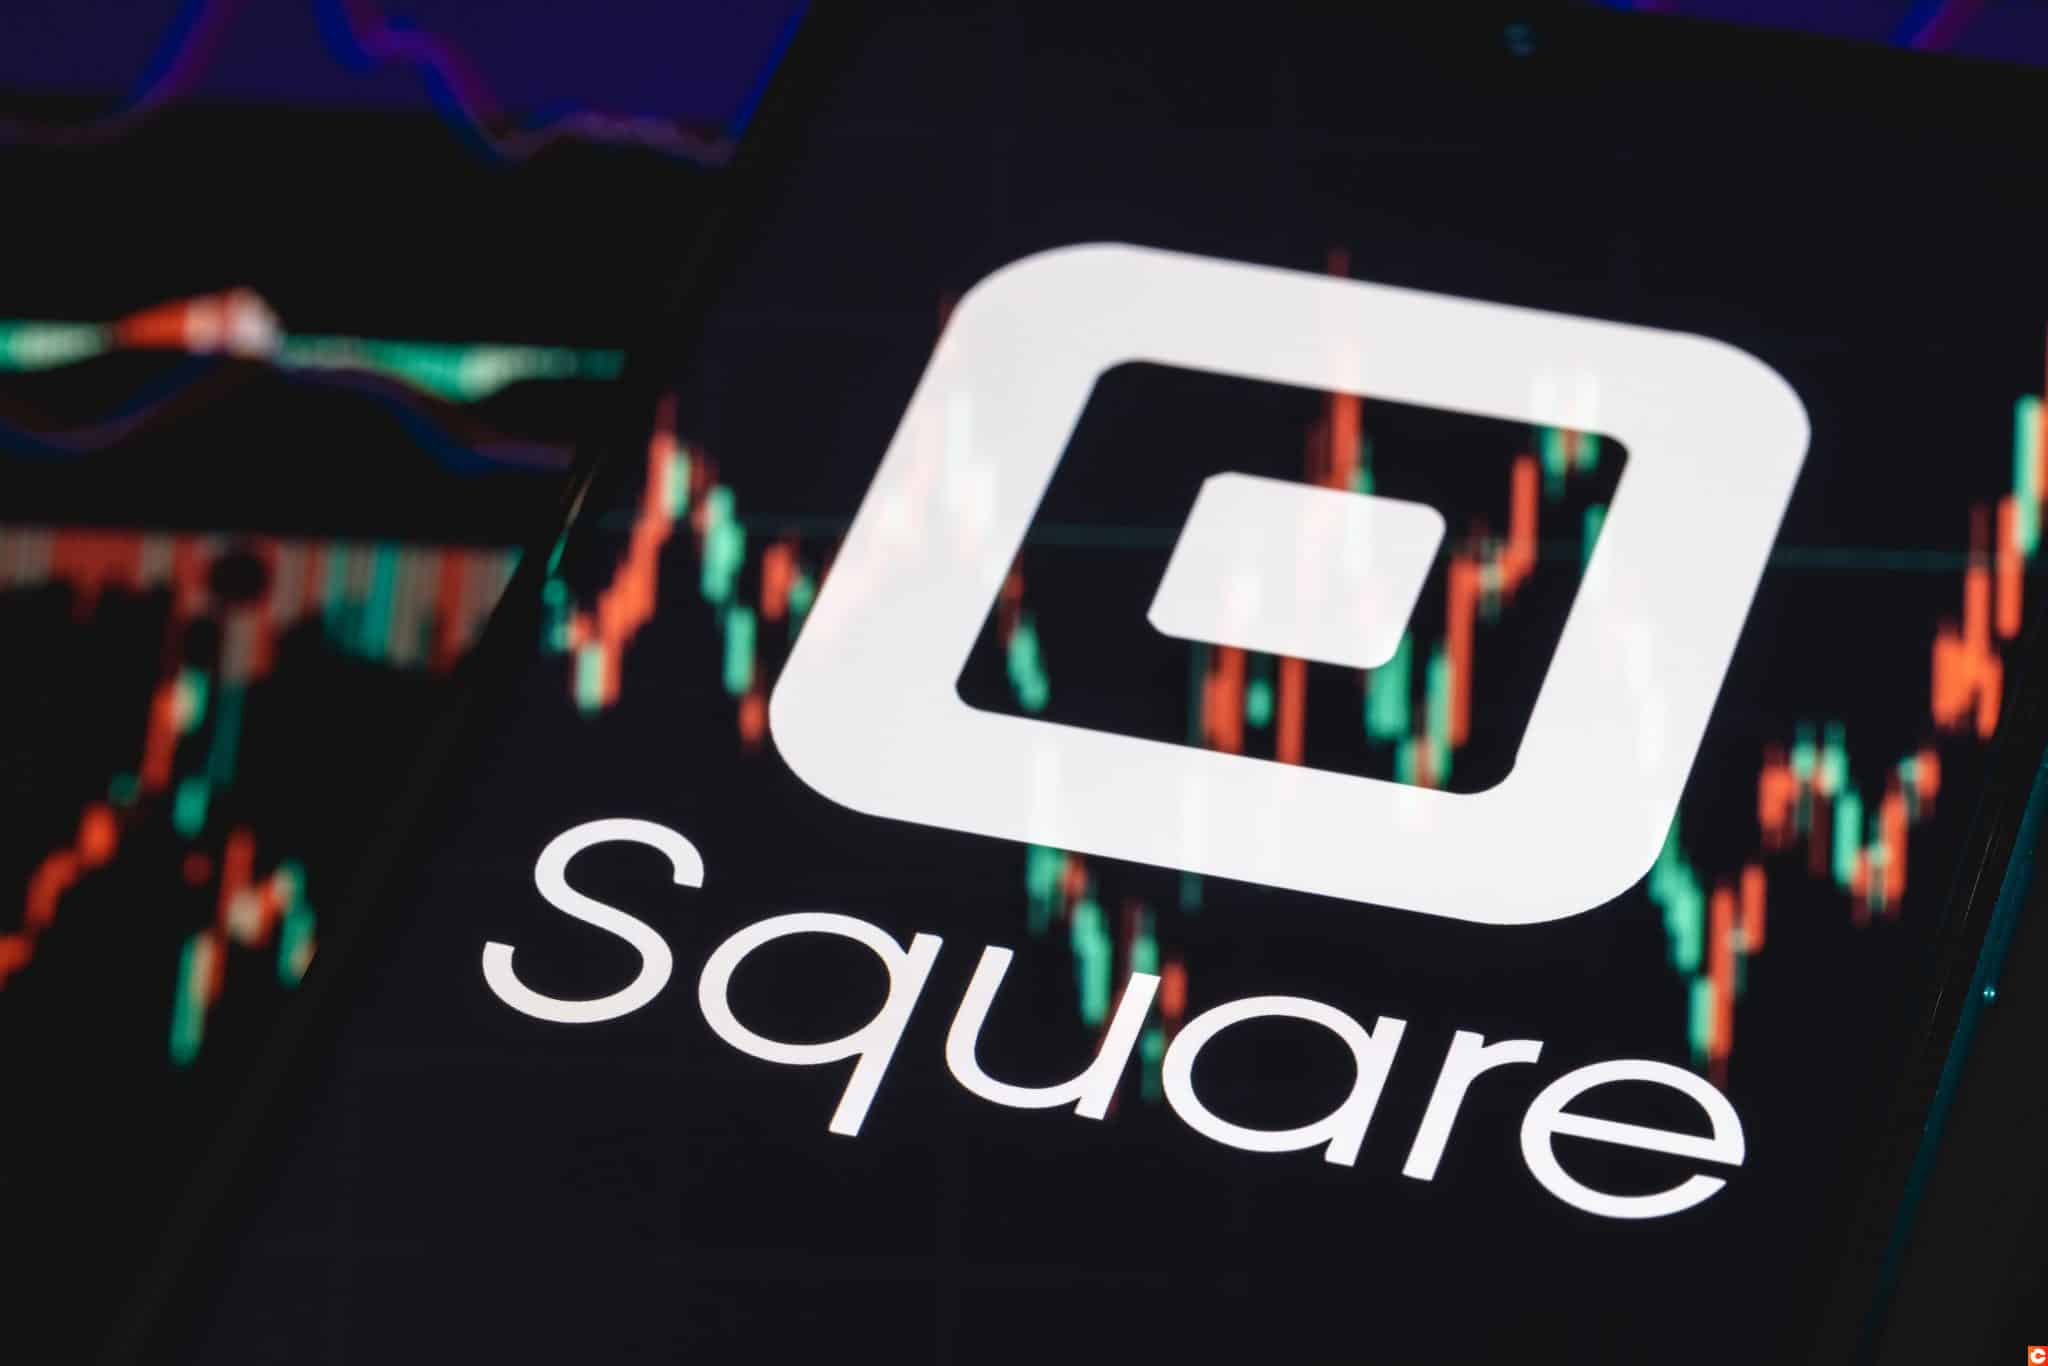 Kazan, Russia - May 30, 2021: Square is technology company that develops solutions for accepting and processing electronic payments. Square logo on smartphone screen. Stock chart in the reflection.